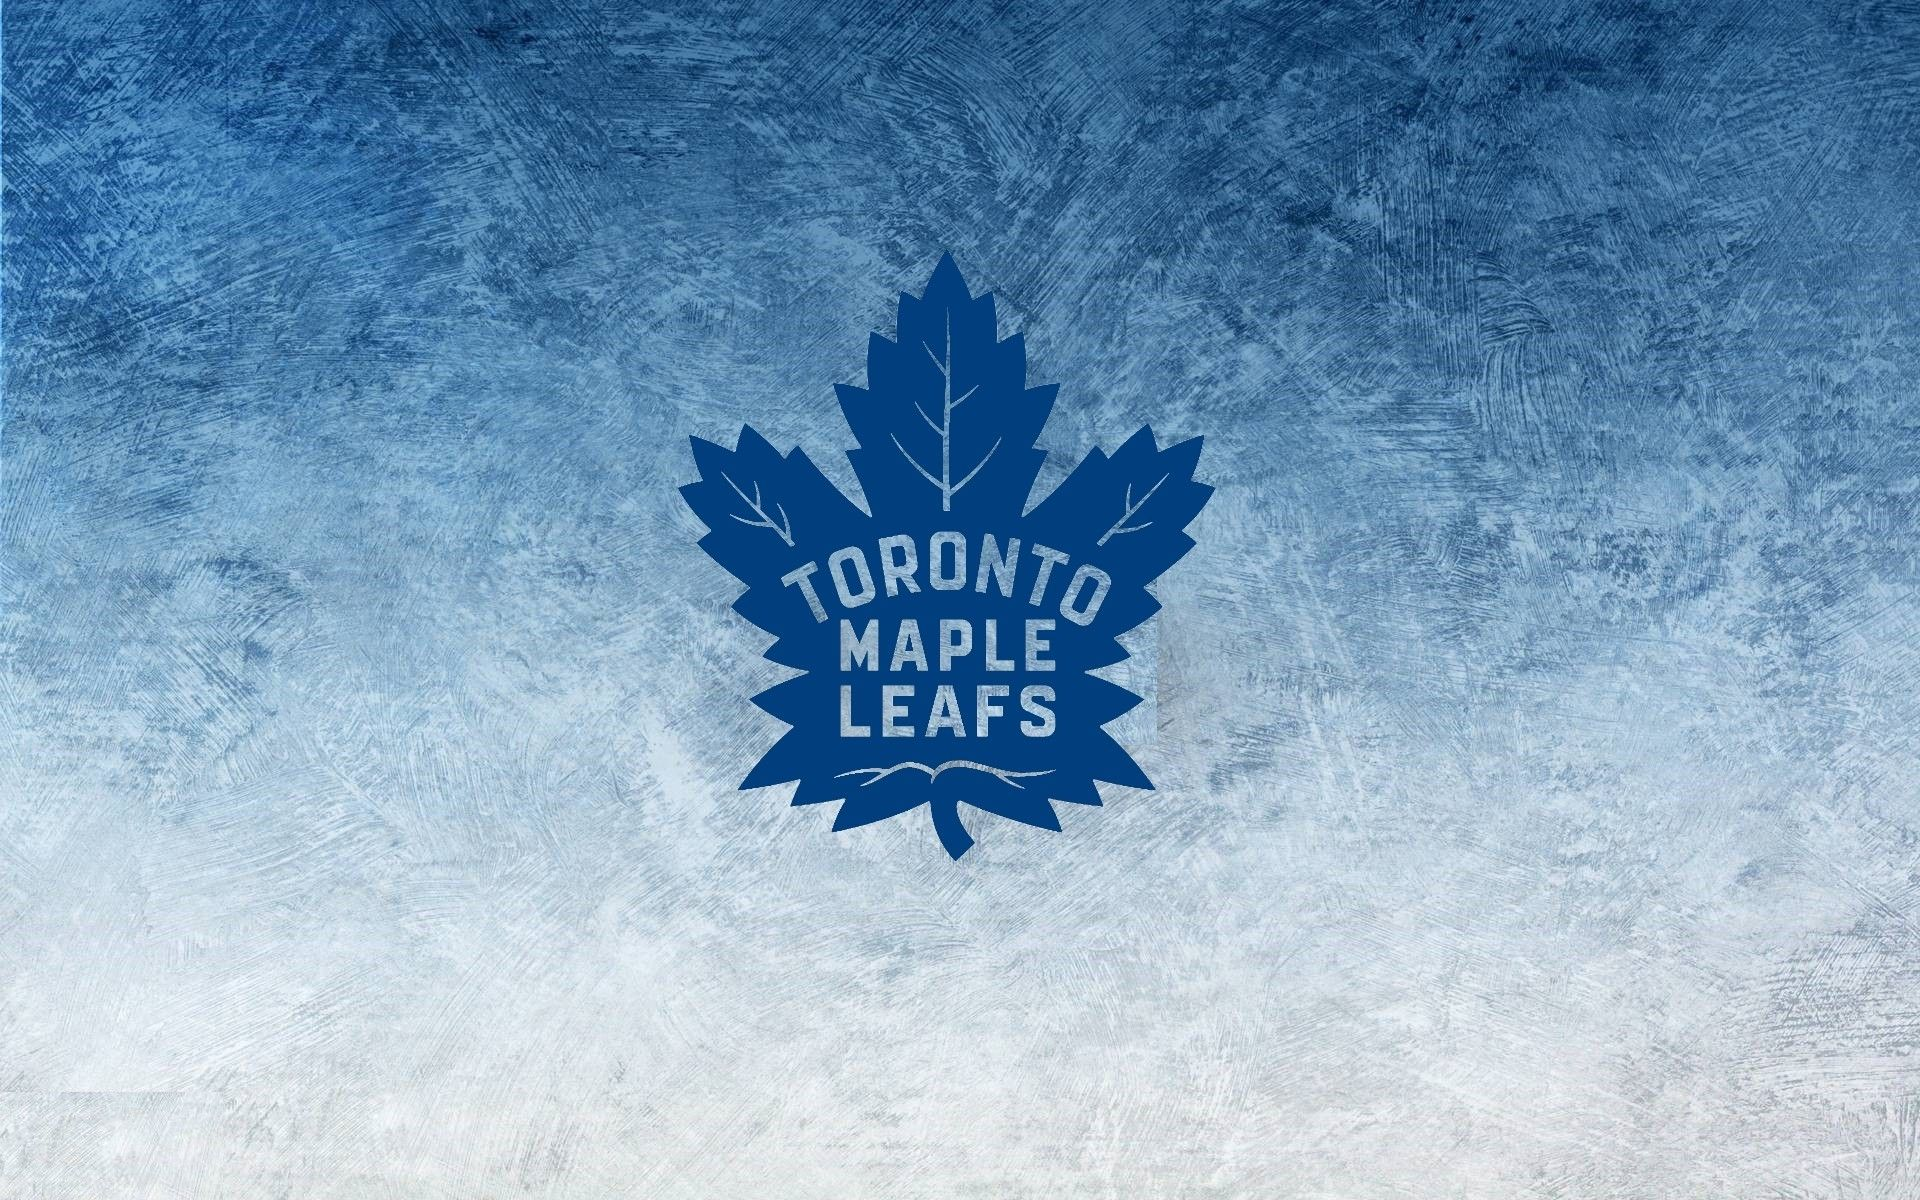 10 Latest Toronto Maple Leaf Wallpaper Full Hd 1920 1080 For Pc Desktop Toronto Maple Leafs Wallpaper Maple Leafs Wallpaper Maple Leafs